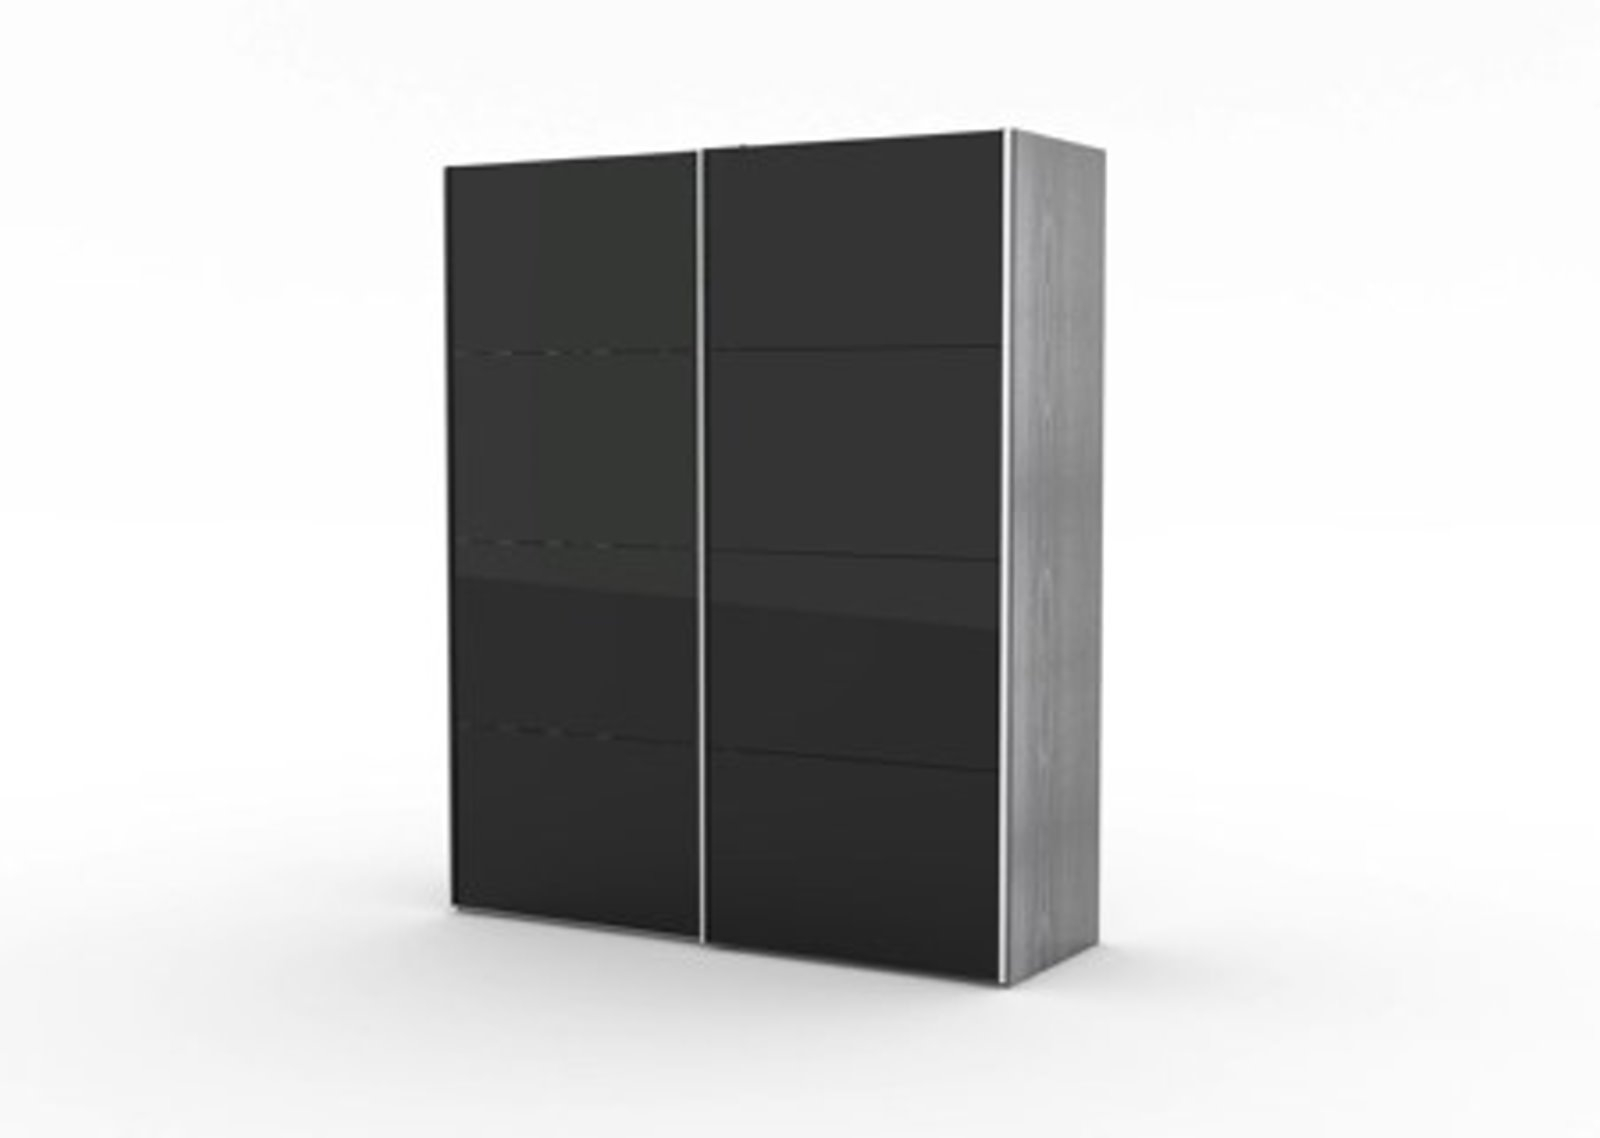 2 t riger kleiderschrank infiniti esche dekor schwarz. Black Bedroom Furniture Sets. Home Design Ideas